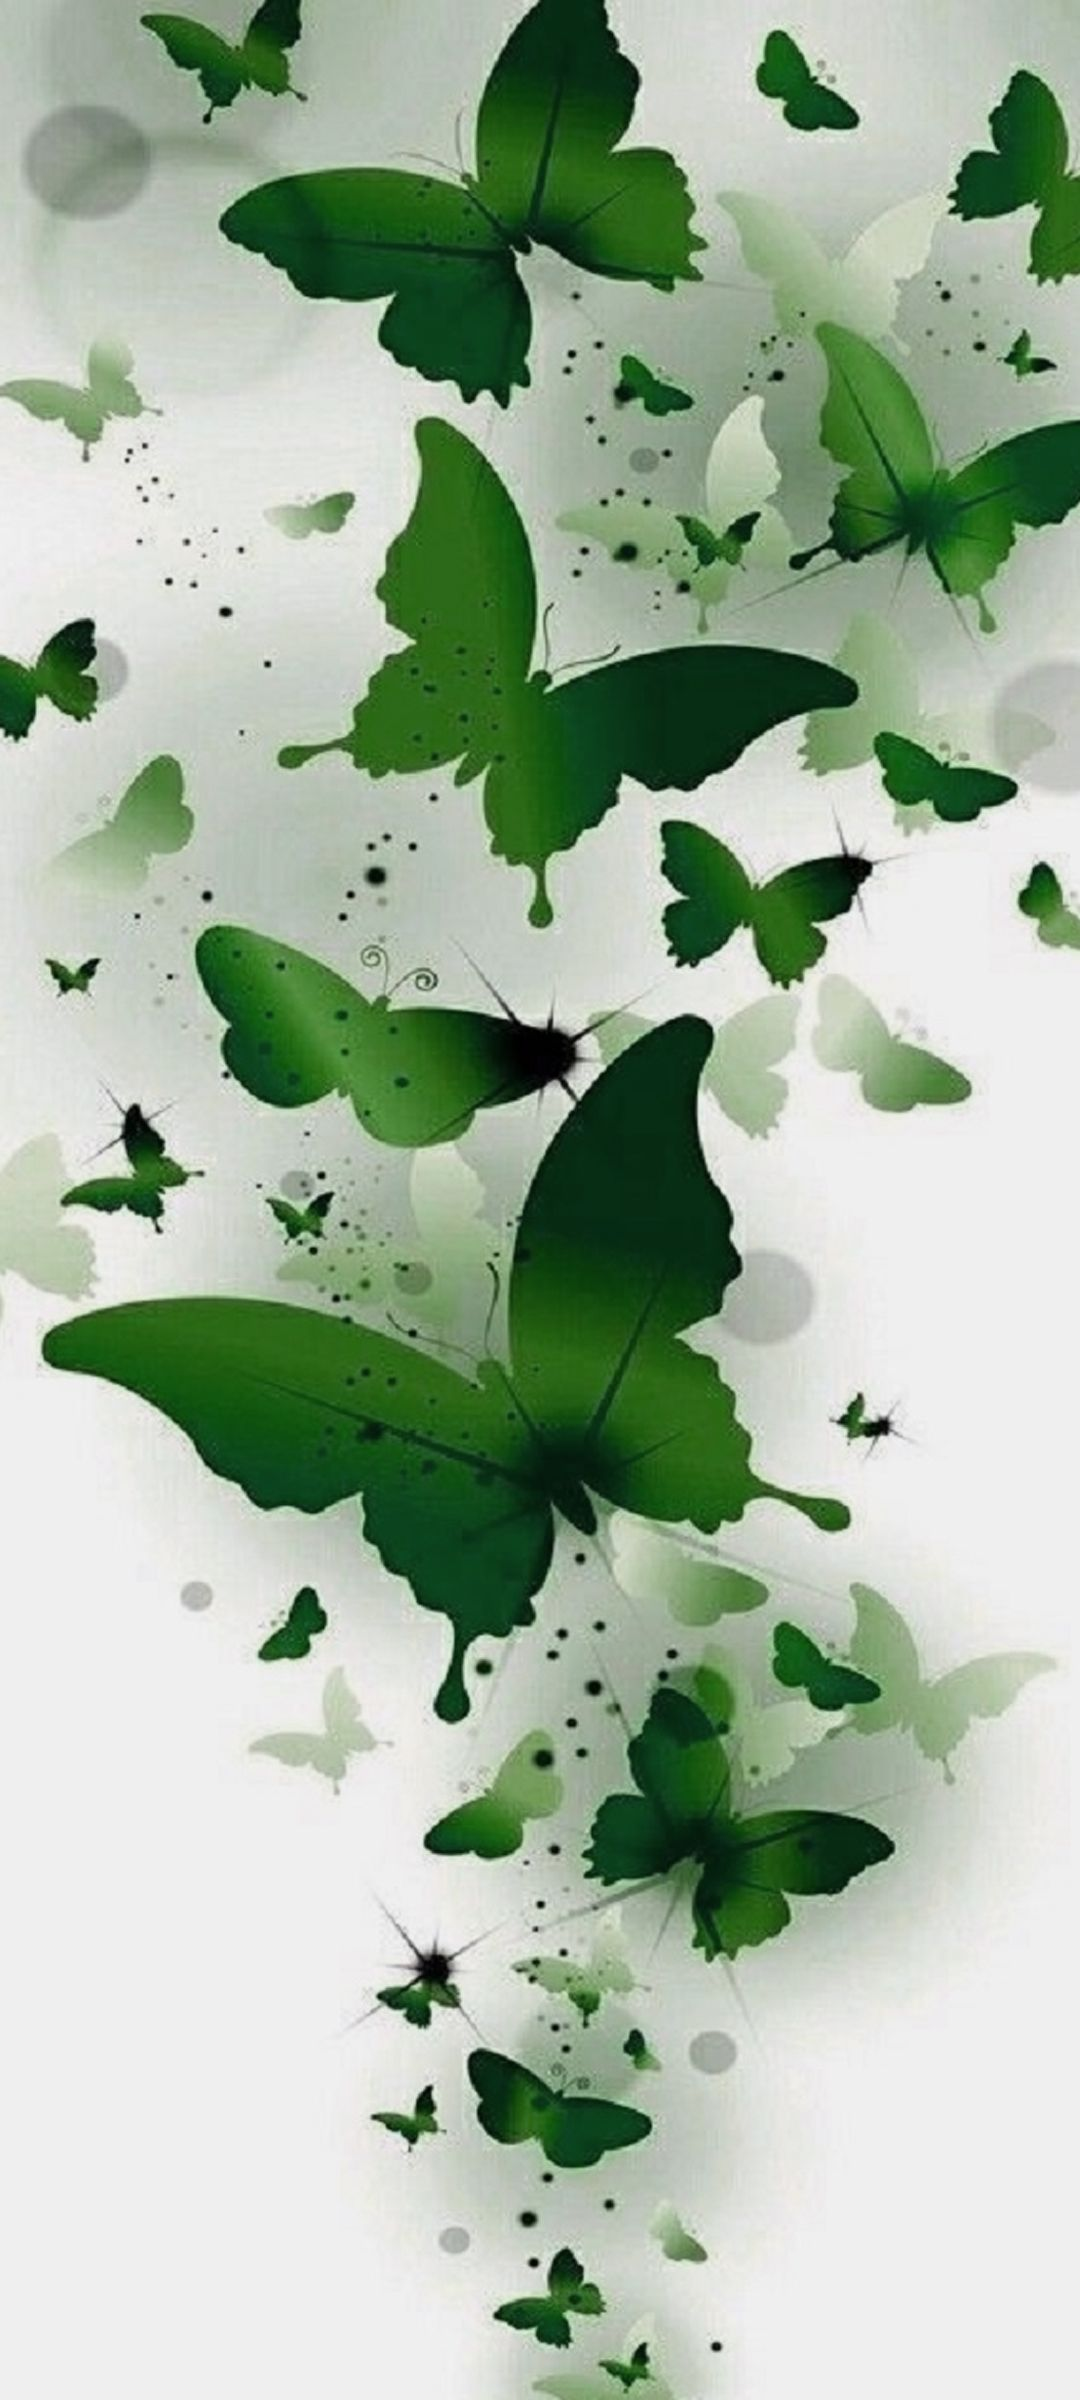 10 Wallpapers That Will Look Perfect On Your Xiaomi Redmi Note 9 Pro 06 Animated Green Butterflies Hd Wallpaper Desktop Wallpaper Smartphone Wallpaper